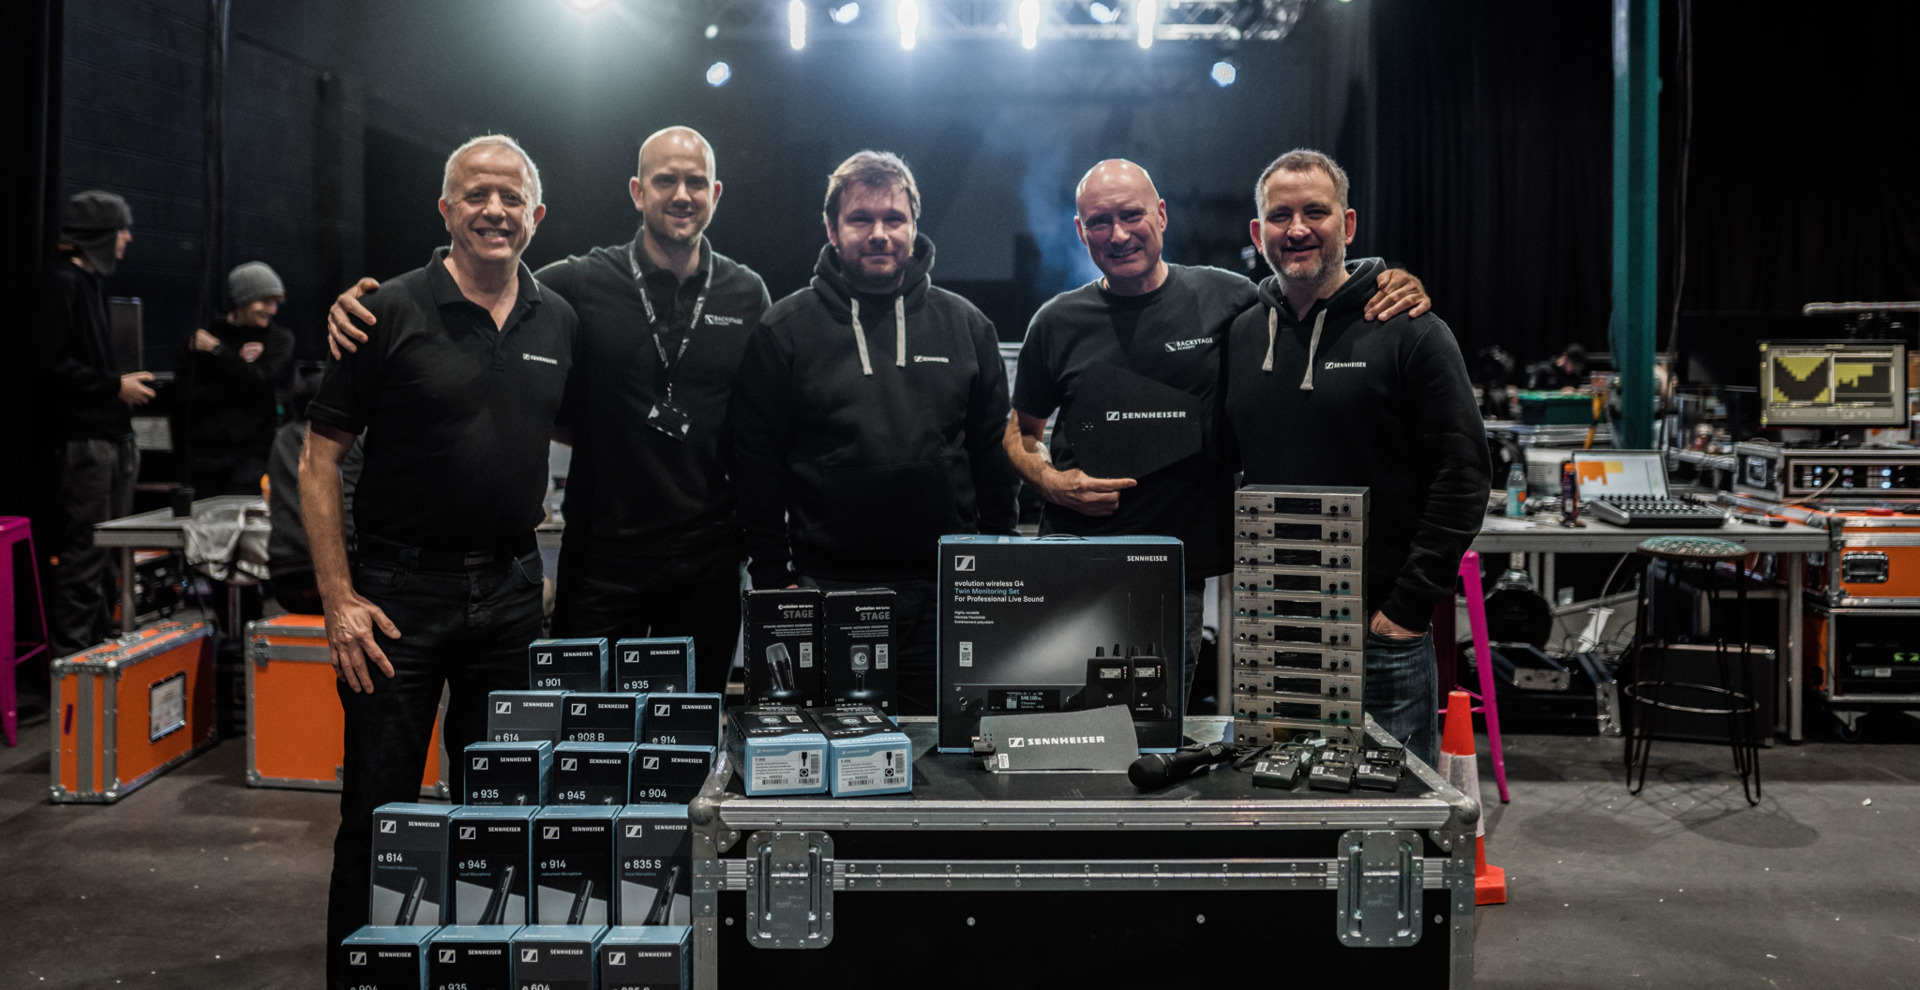 Sennheiser supports sound industry's future talent with backstage academy